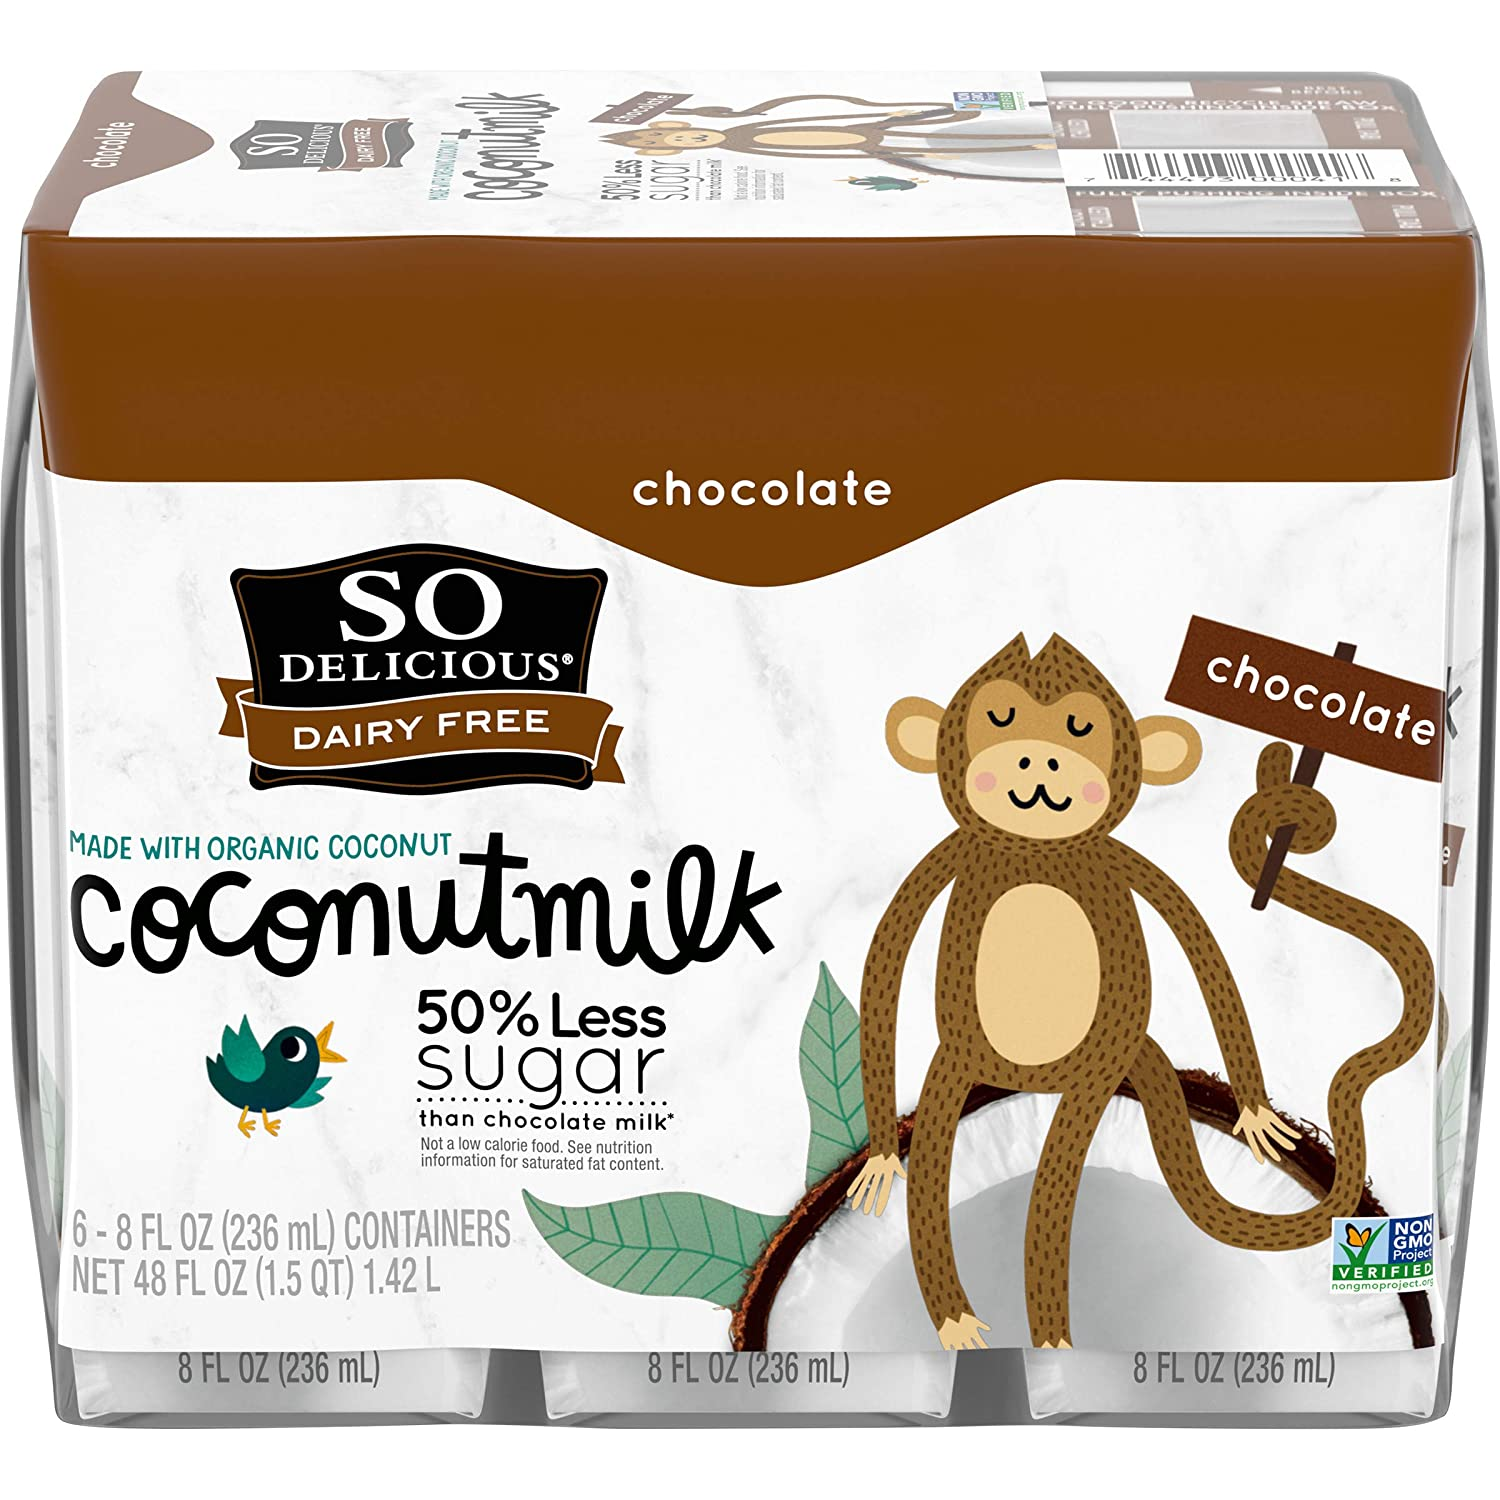 So Delicious Dairy Free Shelf-Stable Coconutmilk Boxes, Chocolate, Vegan, Non-GMO Project Verified, Single Serve, 8 oz., 6 Pack